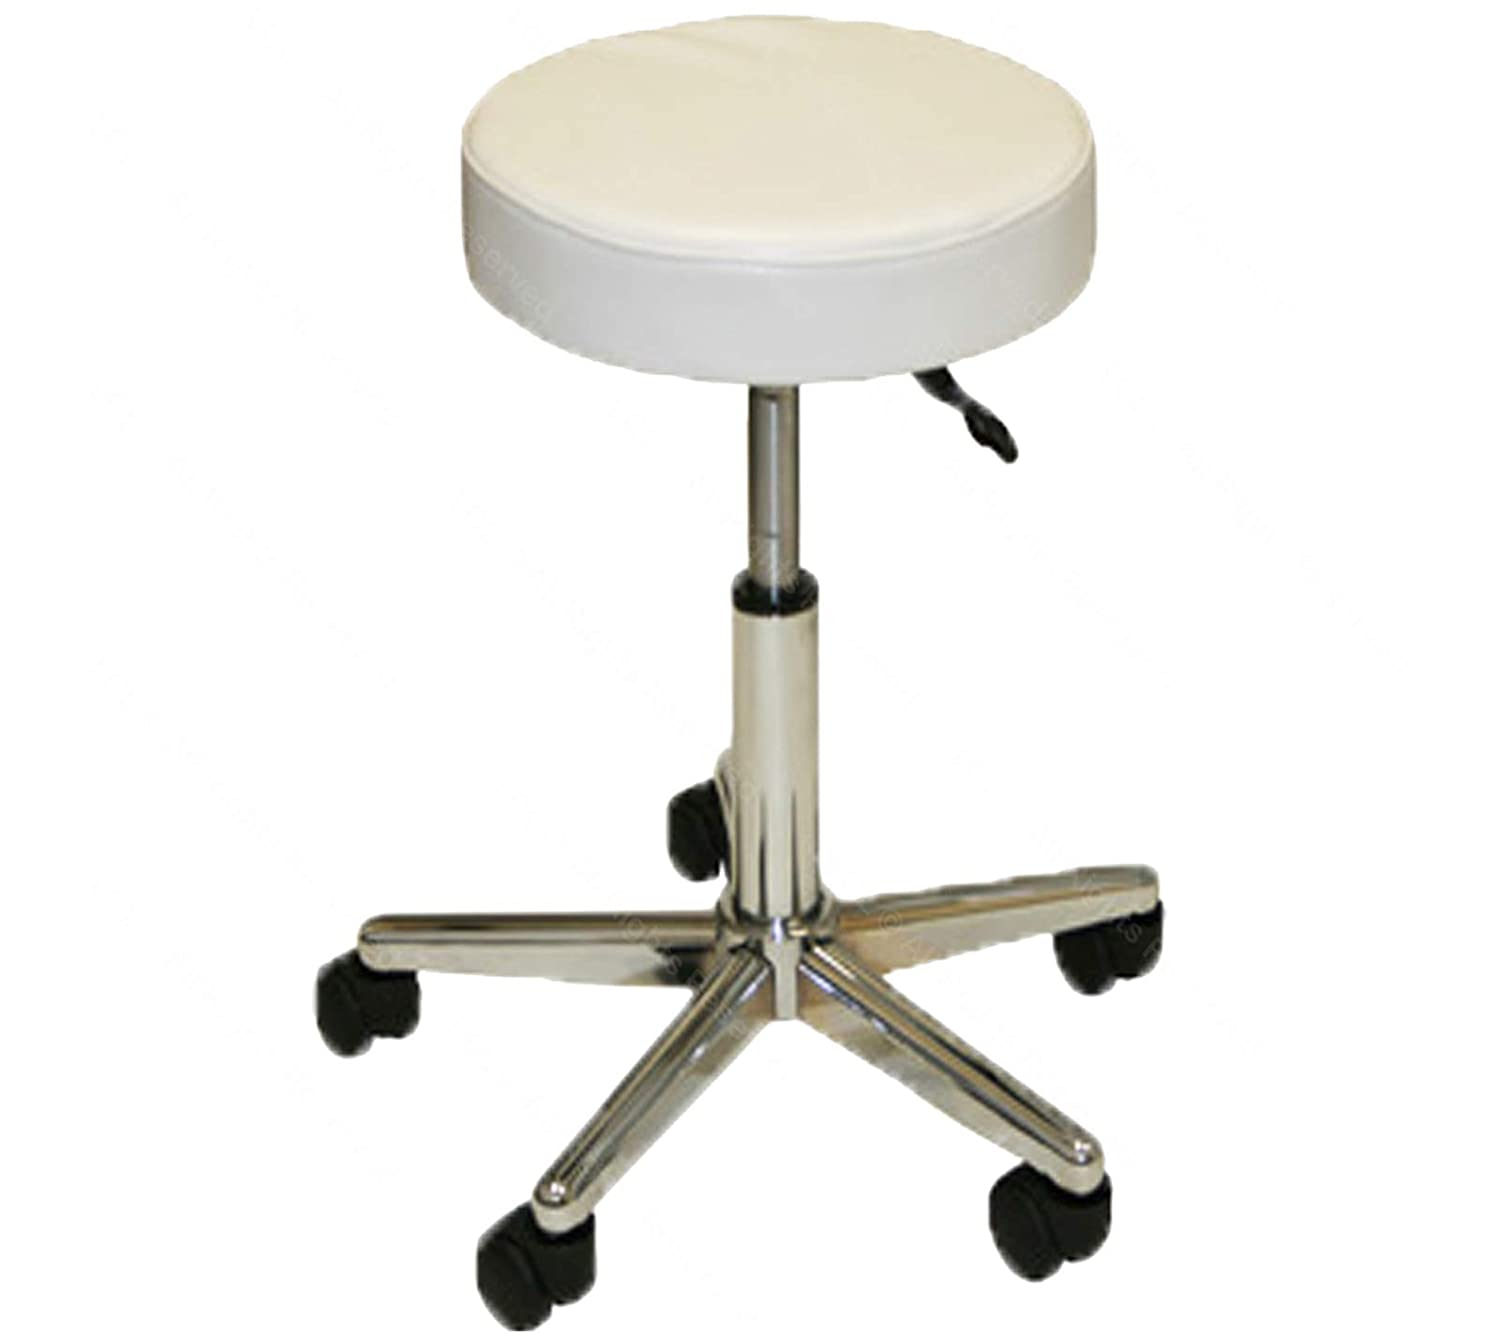 LCL Beauty Max 80% OFF Stool with Chrome Polished Max 63% OFF Star Base